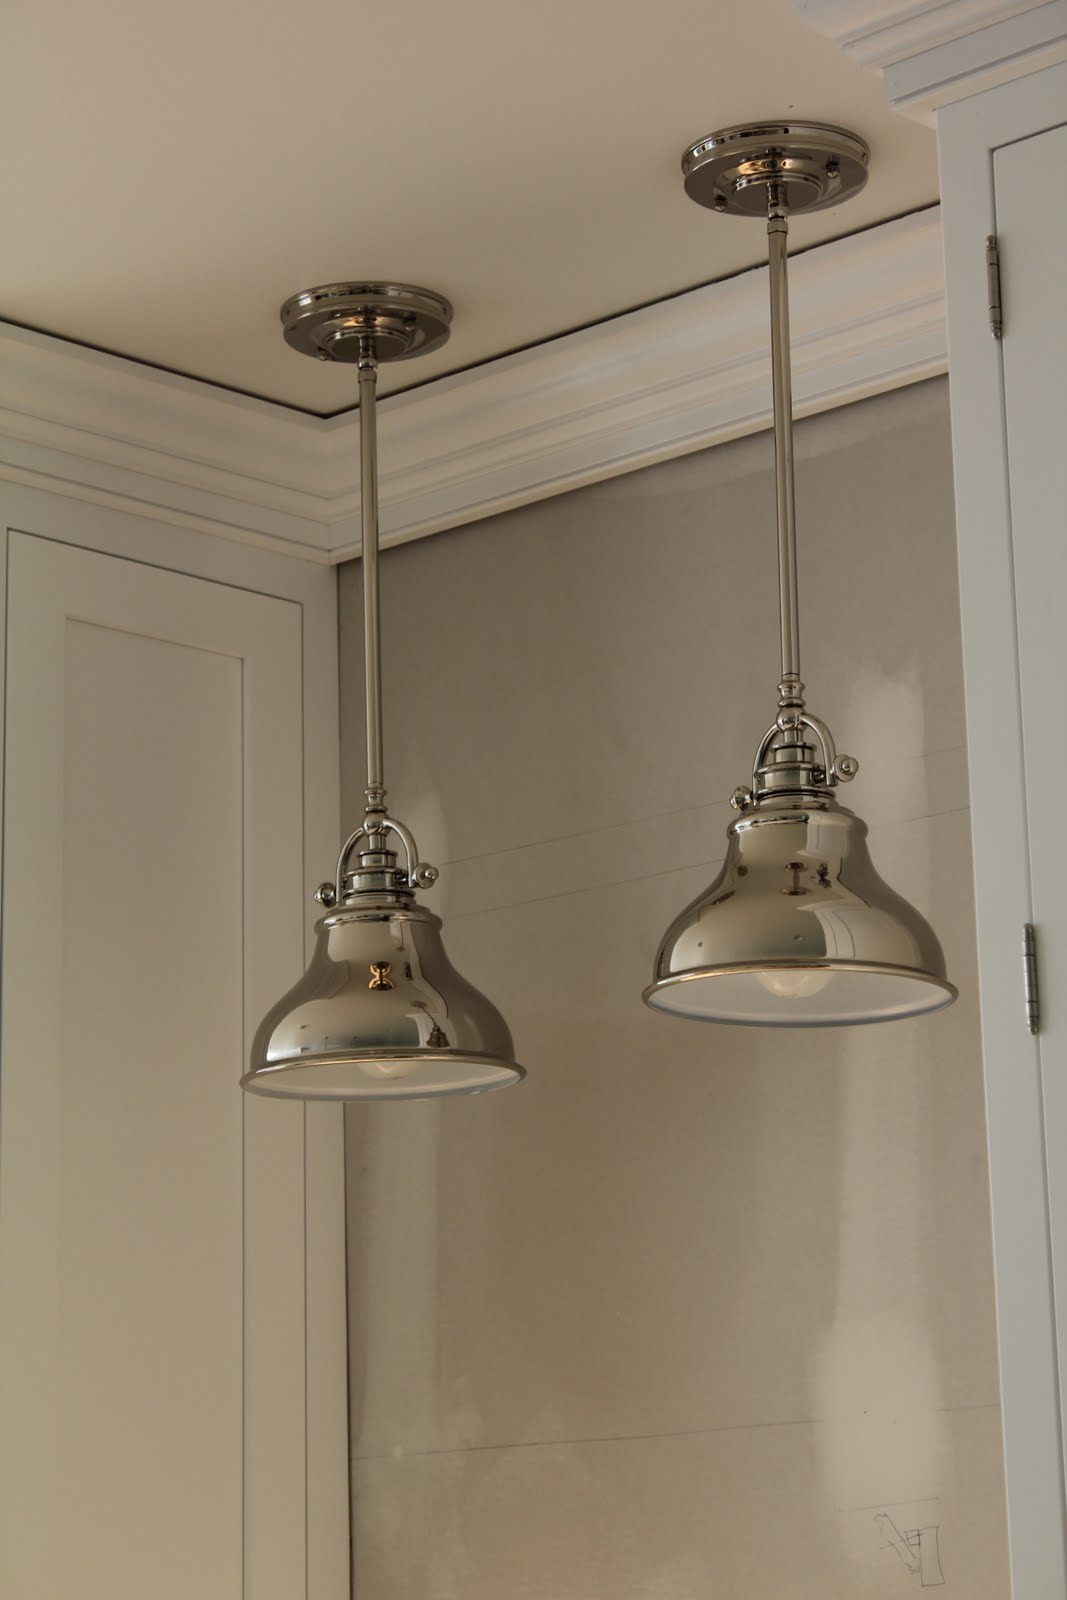 Kitchen Sink Light Kitchen Sink Lights Image Of Mini Pendant Lights For Kitchen